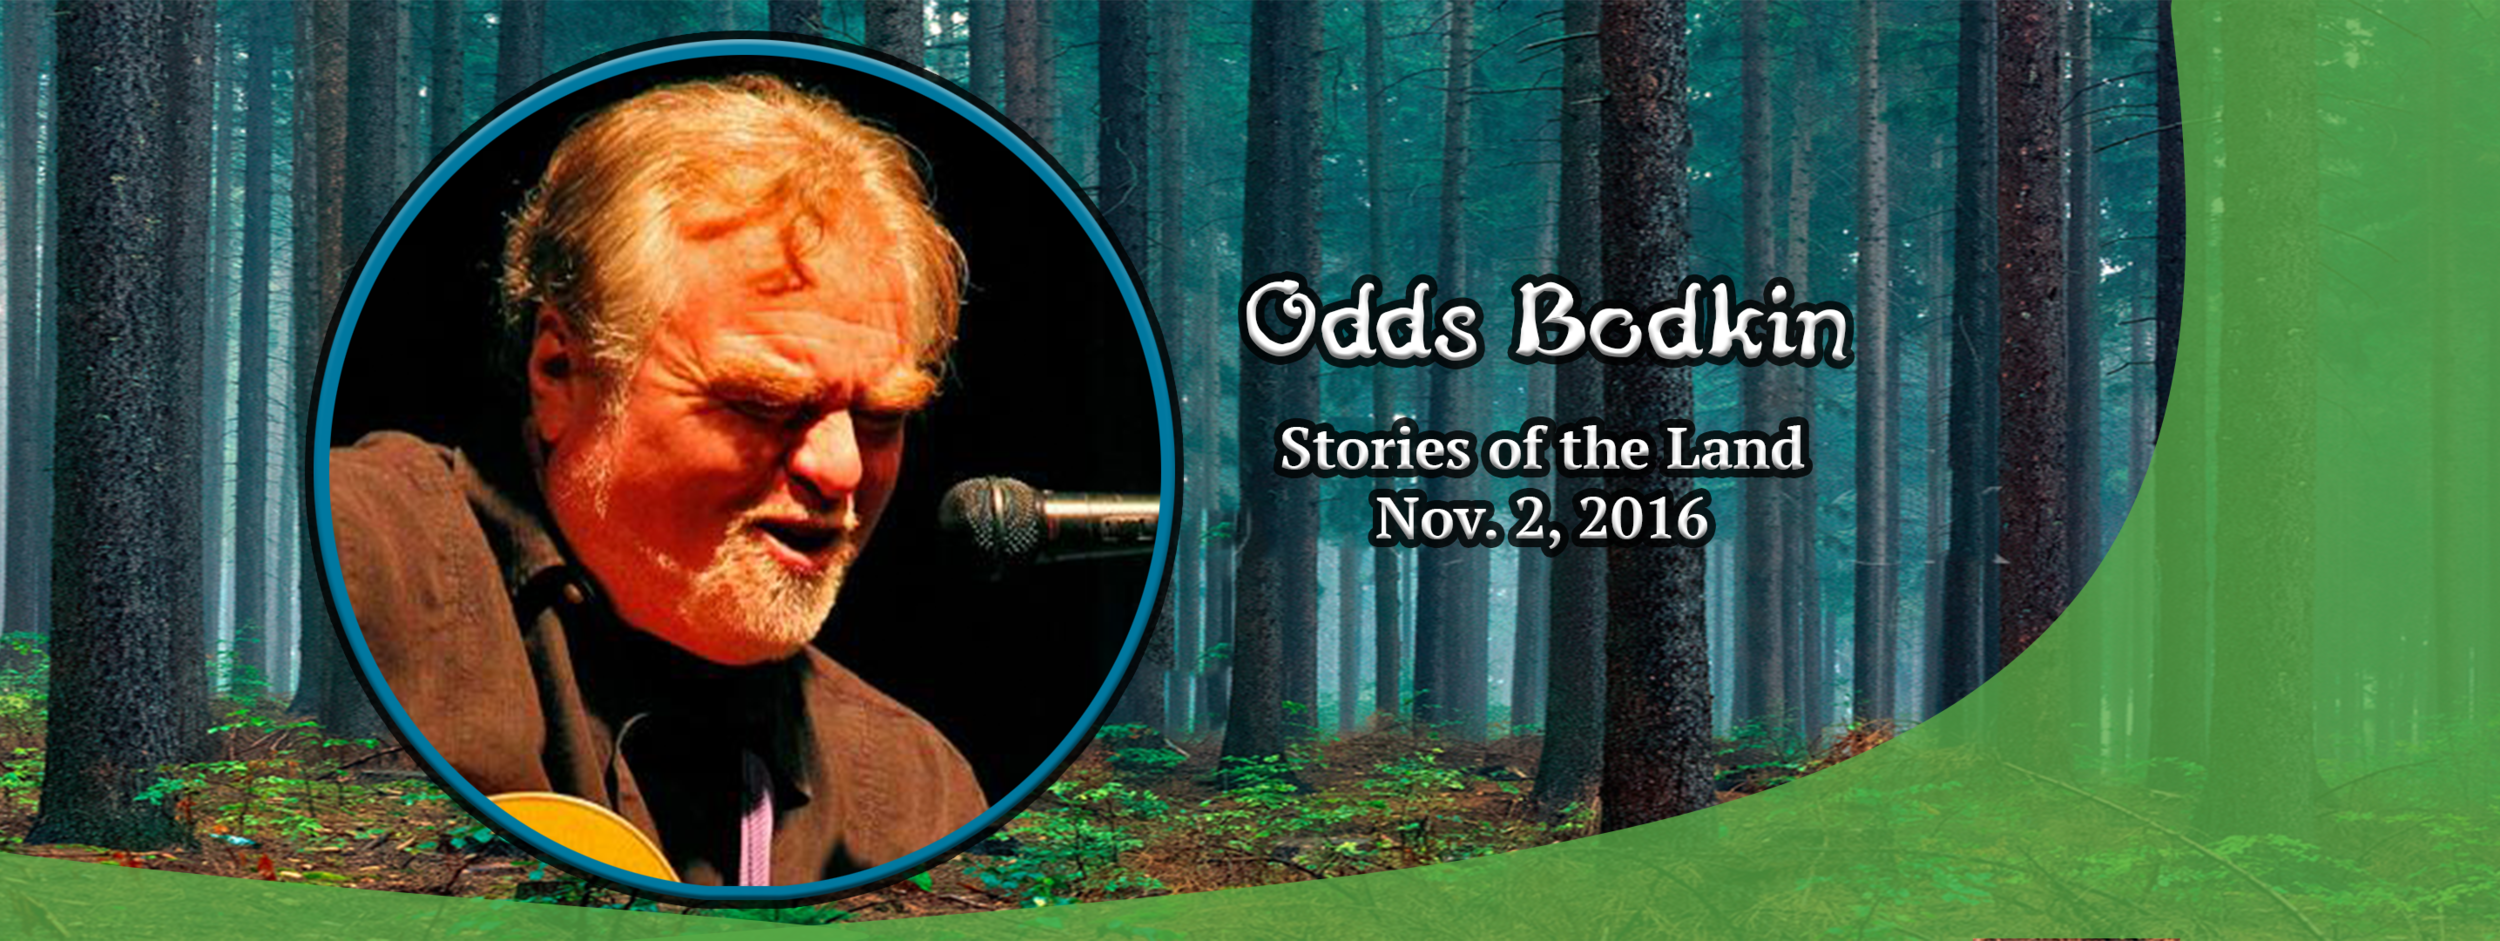 [SB] Odds - Stories of the Land Event Cover.png